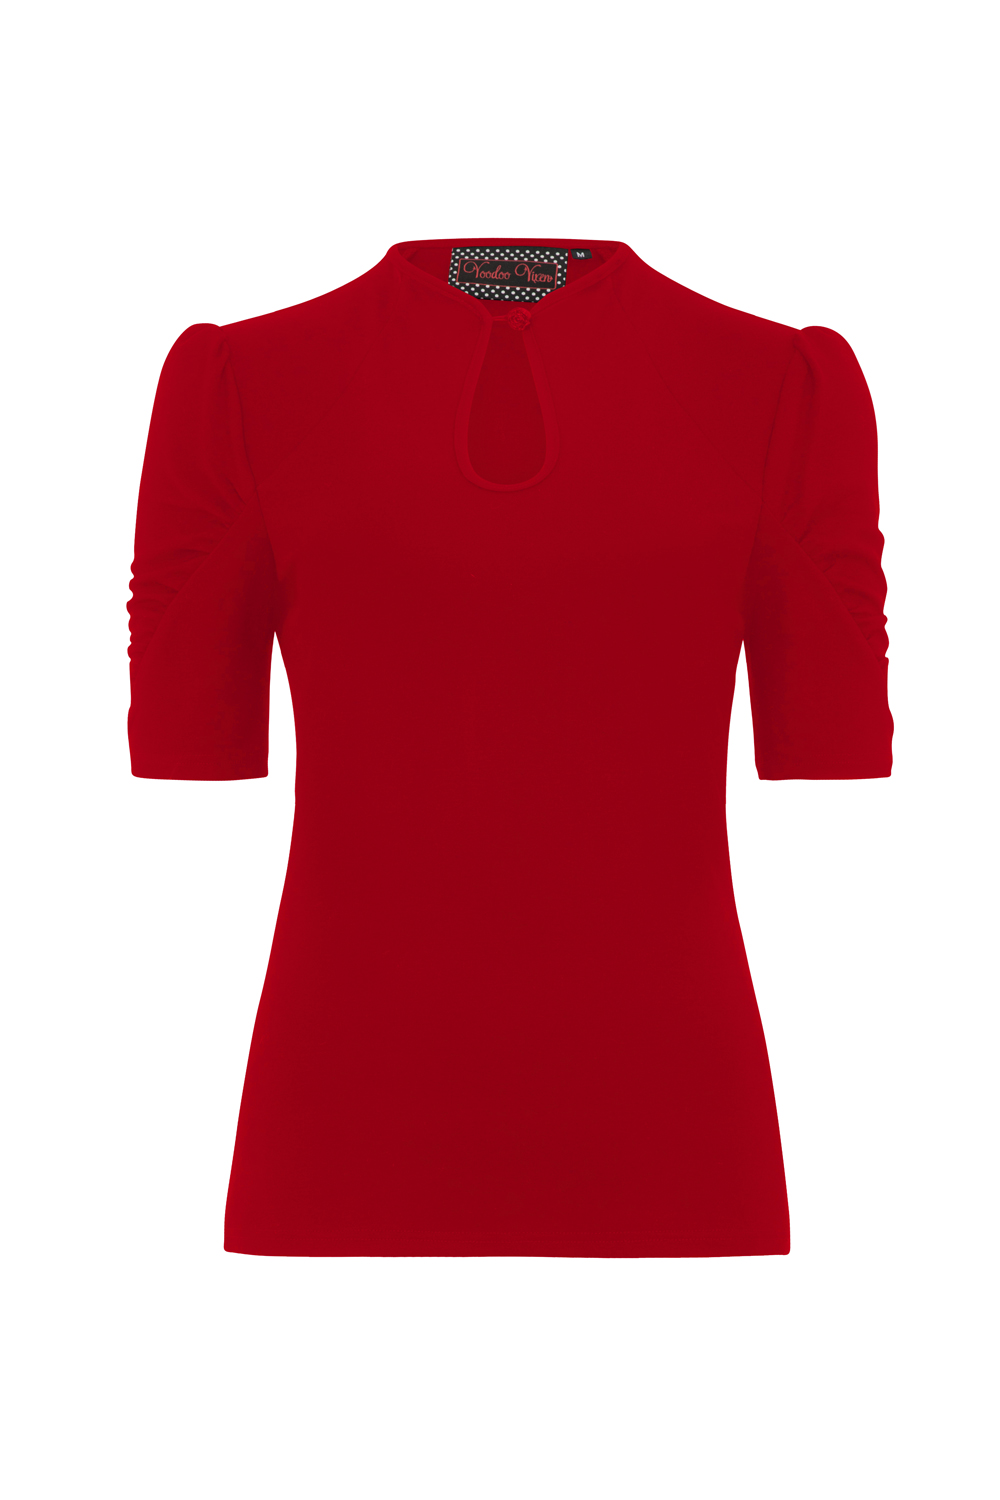 Dita Teese Red Pinup Top